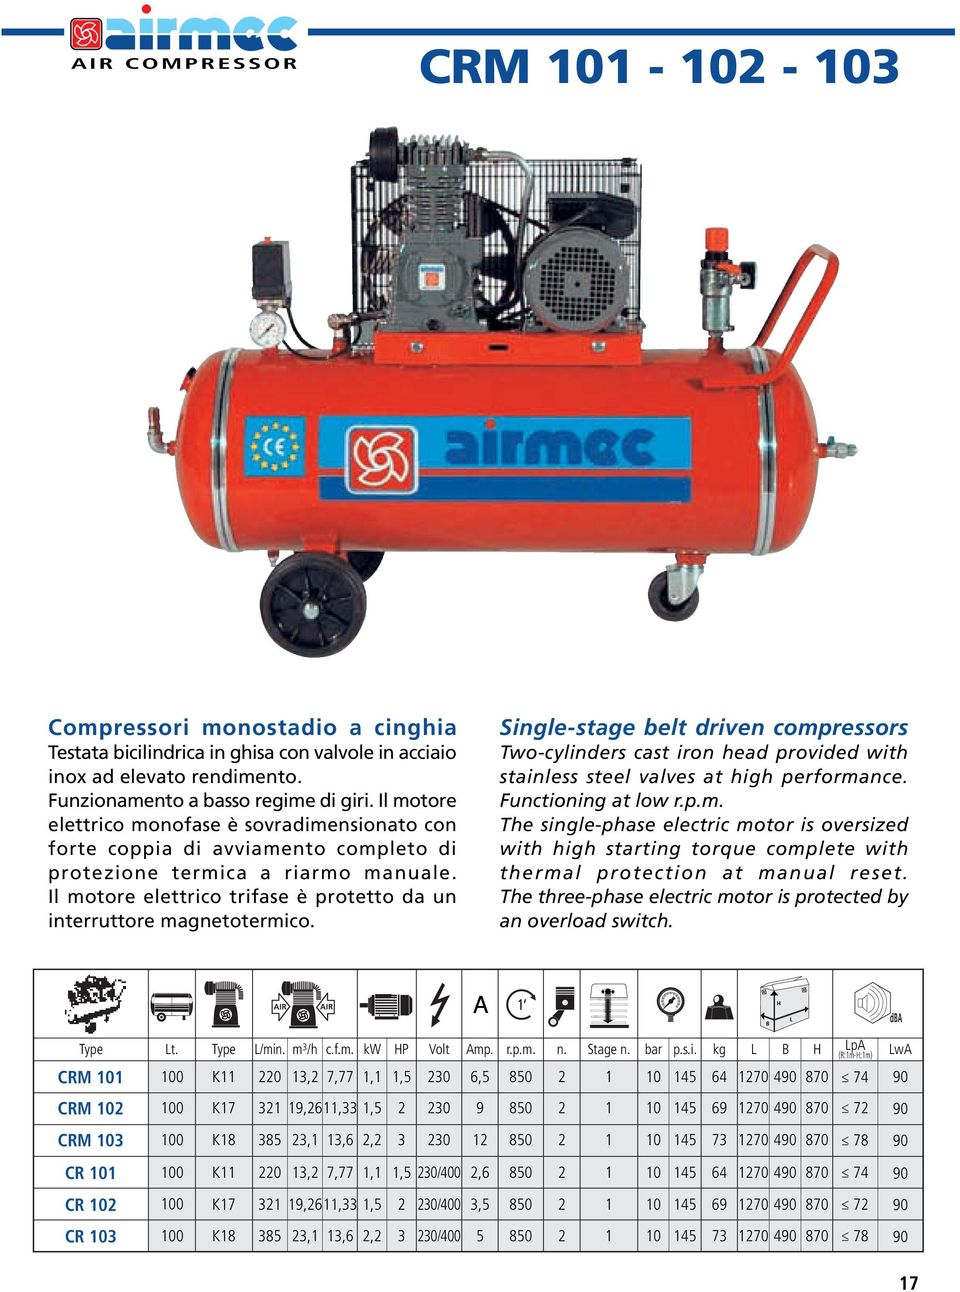 Il motore elettrico trifase è protetto da un interruttore magnetotermico. Single-stage belt driven compressors Two-cylinders cast iron head provided with stainless steel valves at high performance.